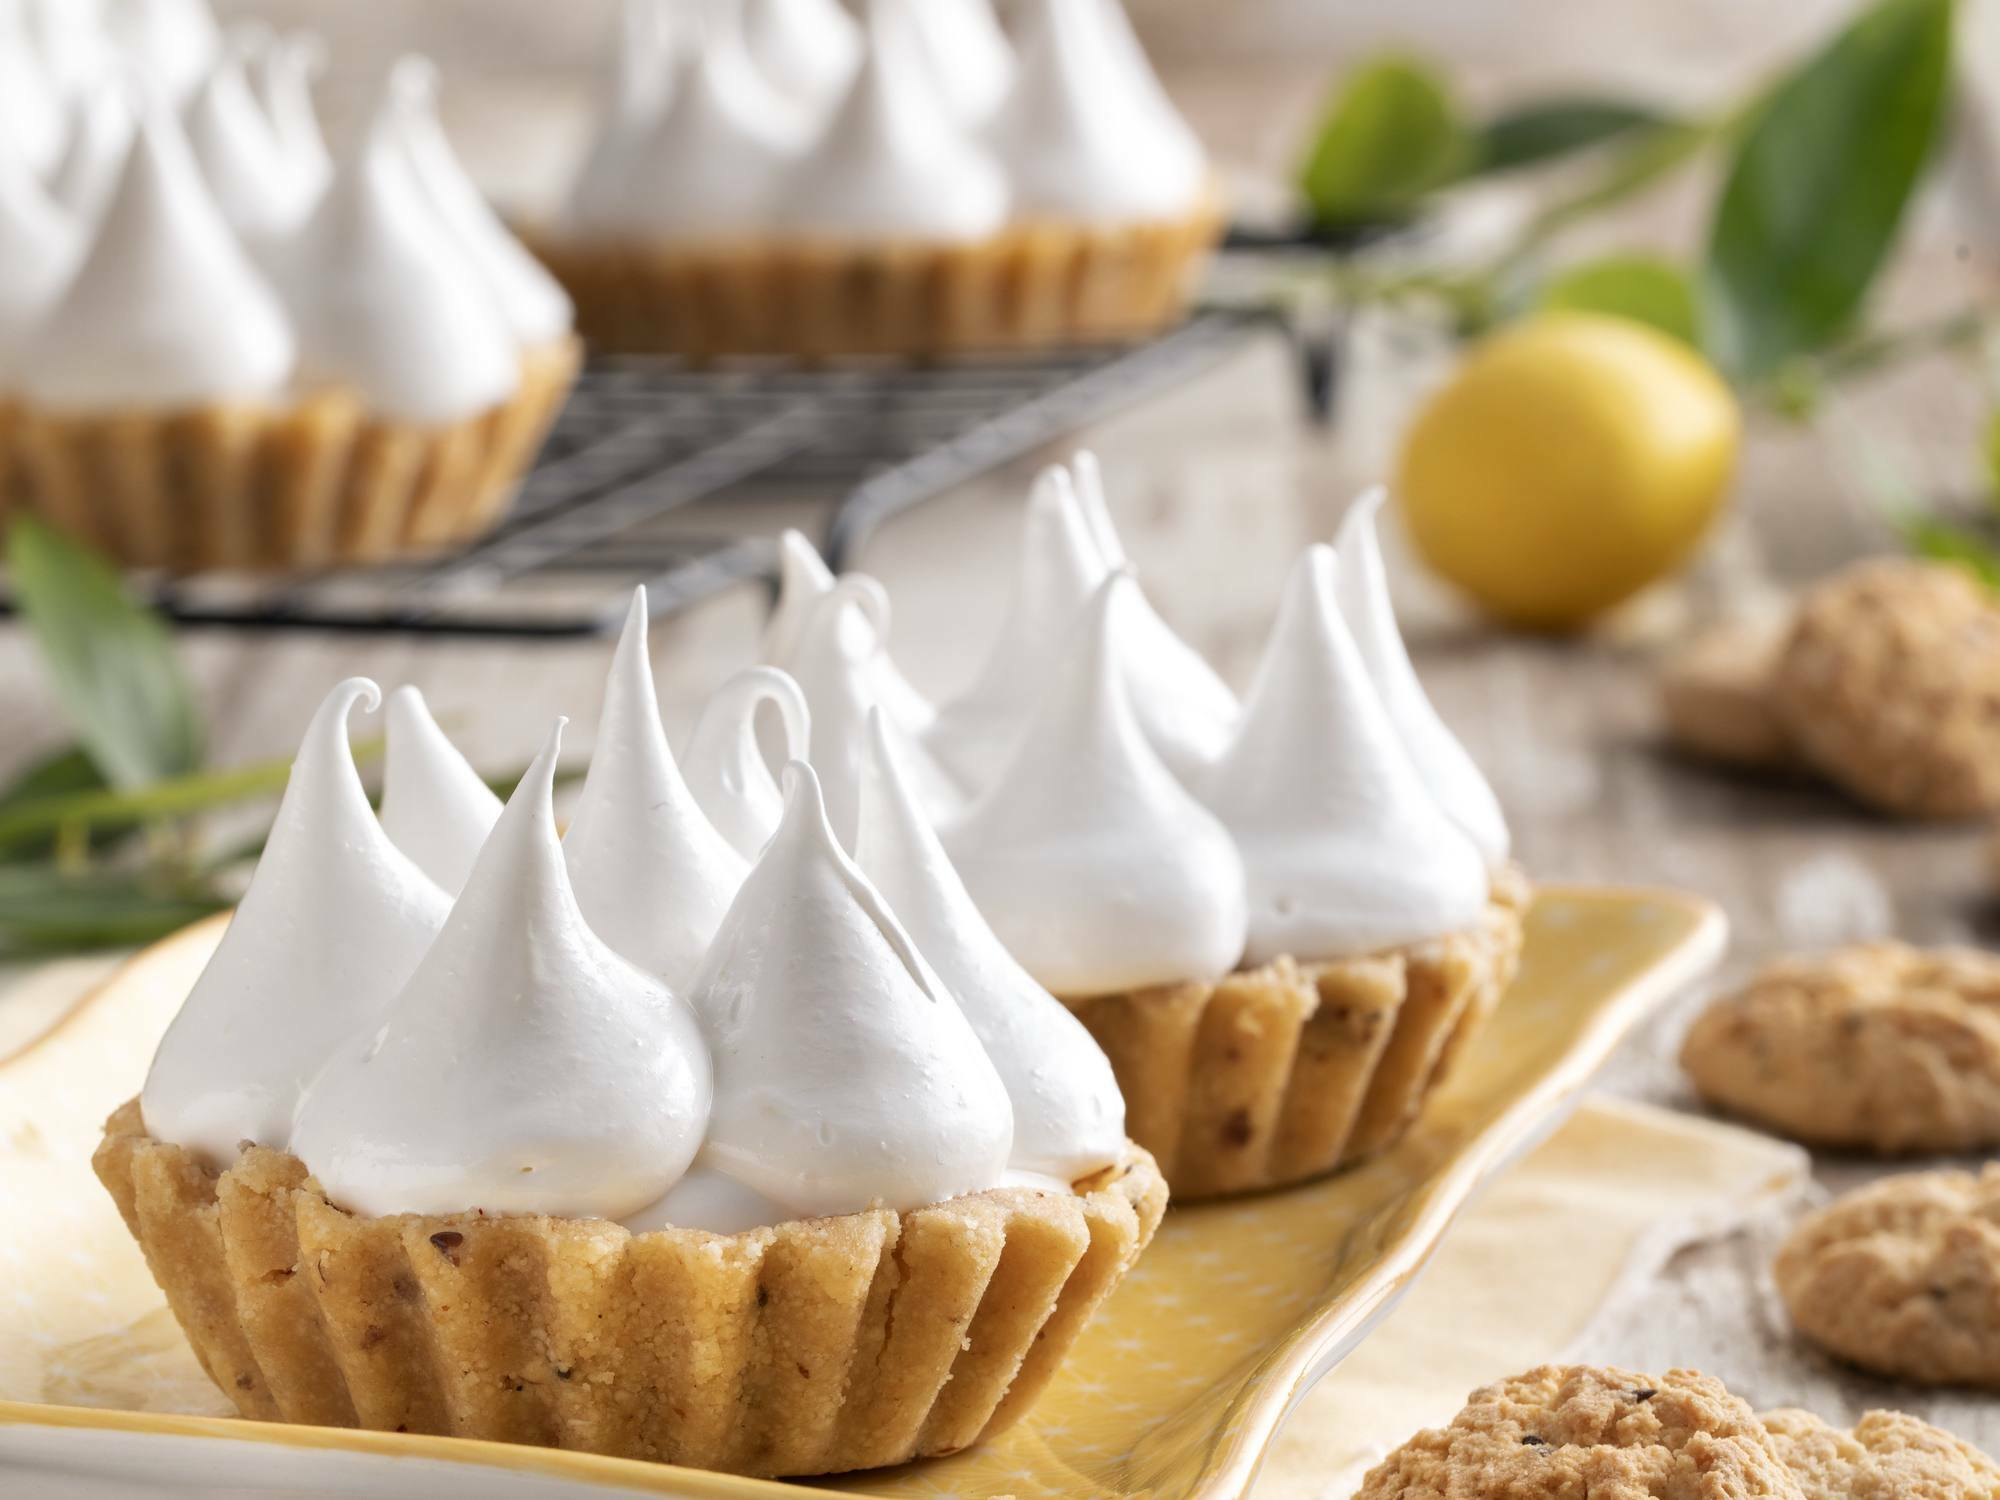 Lemon pie con cookies sabor vainilla